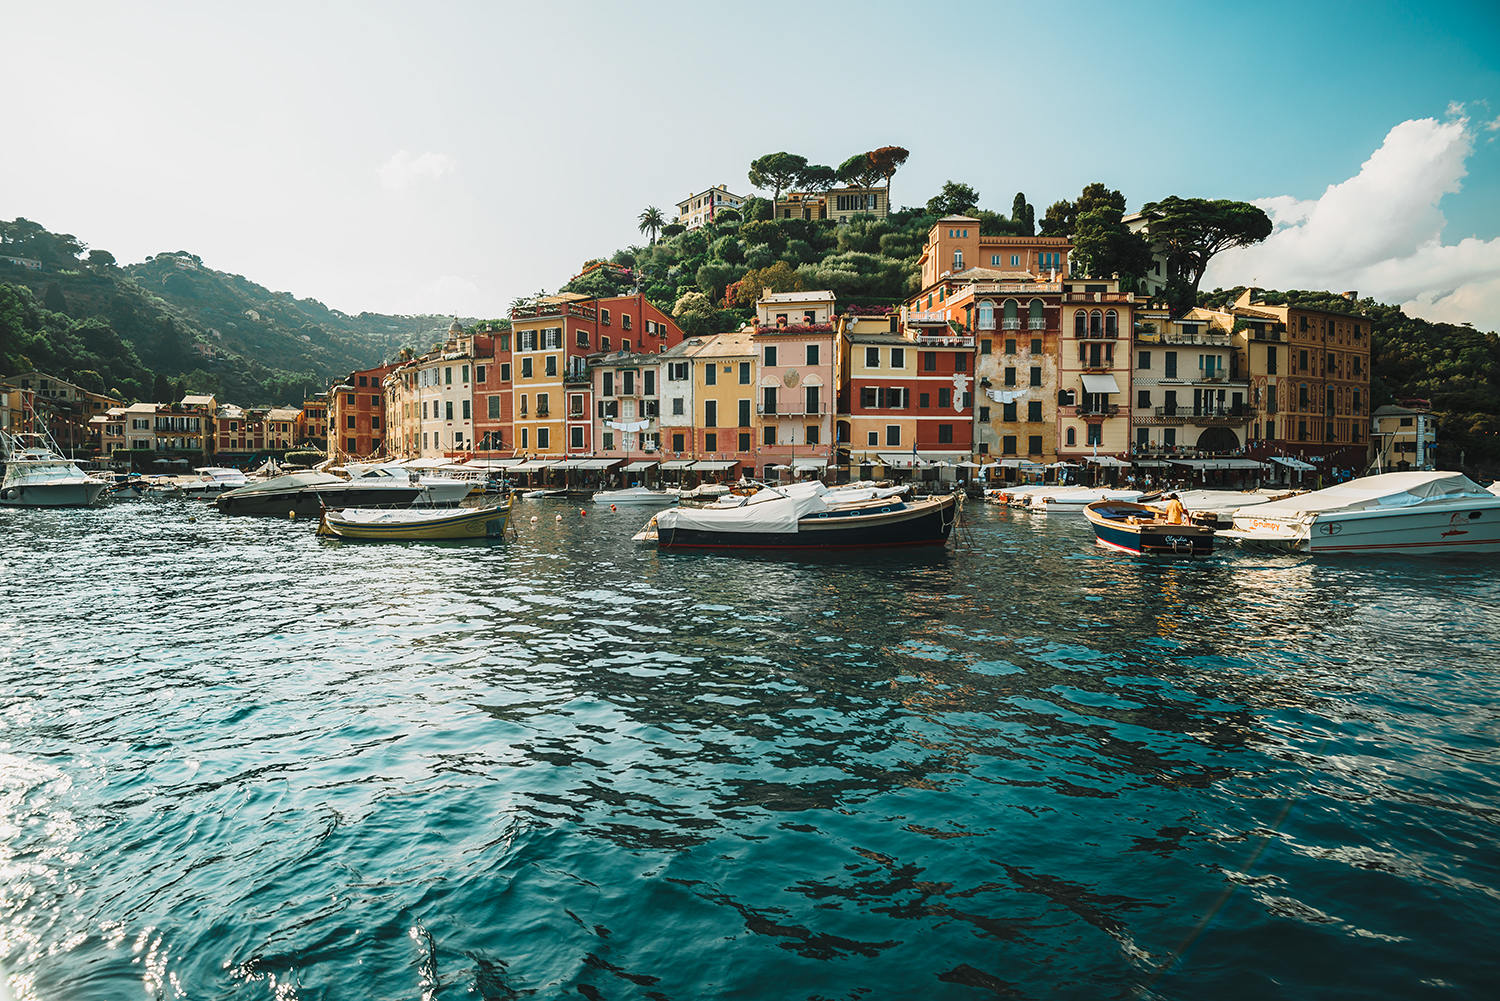 https://sleeklens.com/wp-content/uploads/2018/08/Portofino-2_edit.jpg